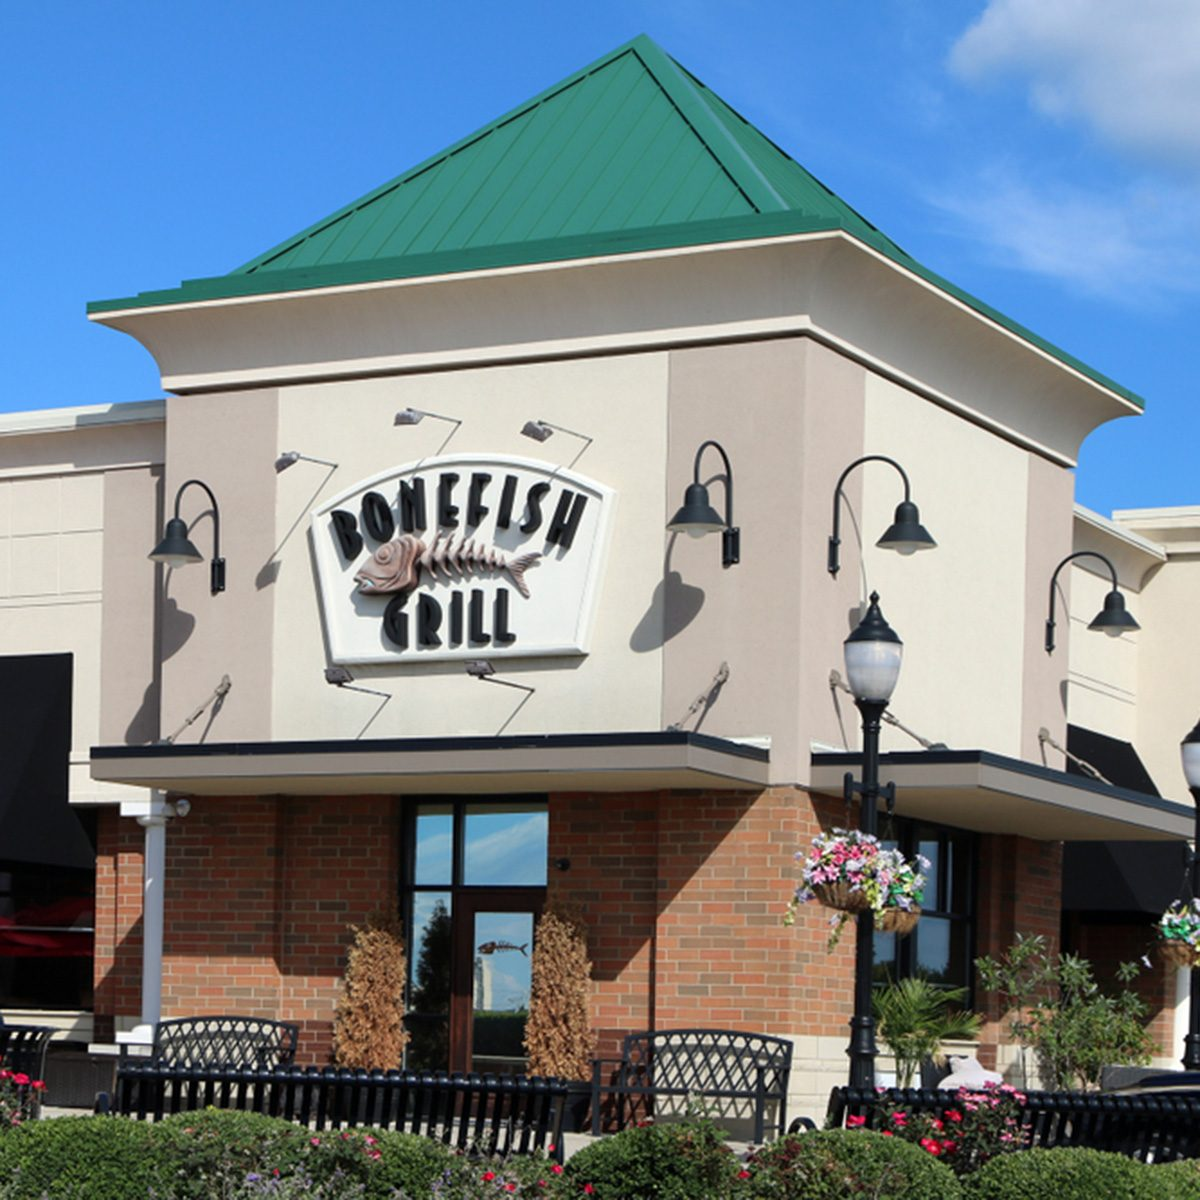 Bonefish Grille is a chain of upscale restaurants featuring fresh seafood.